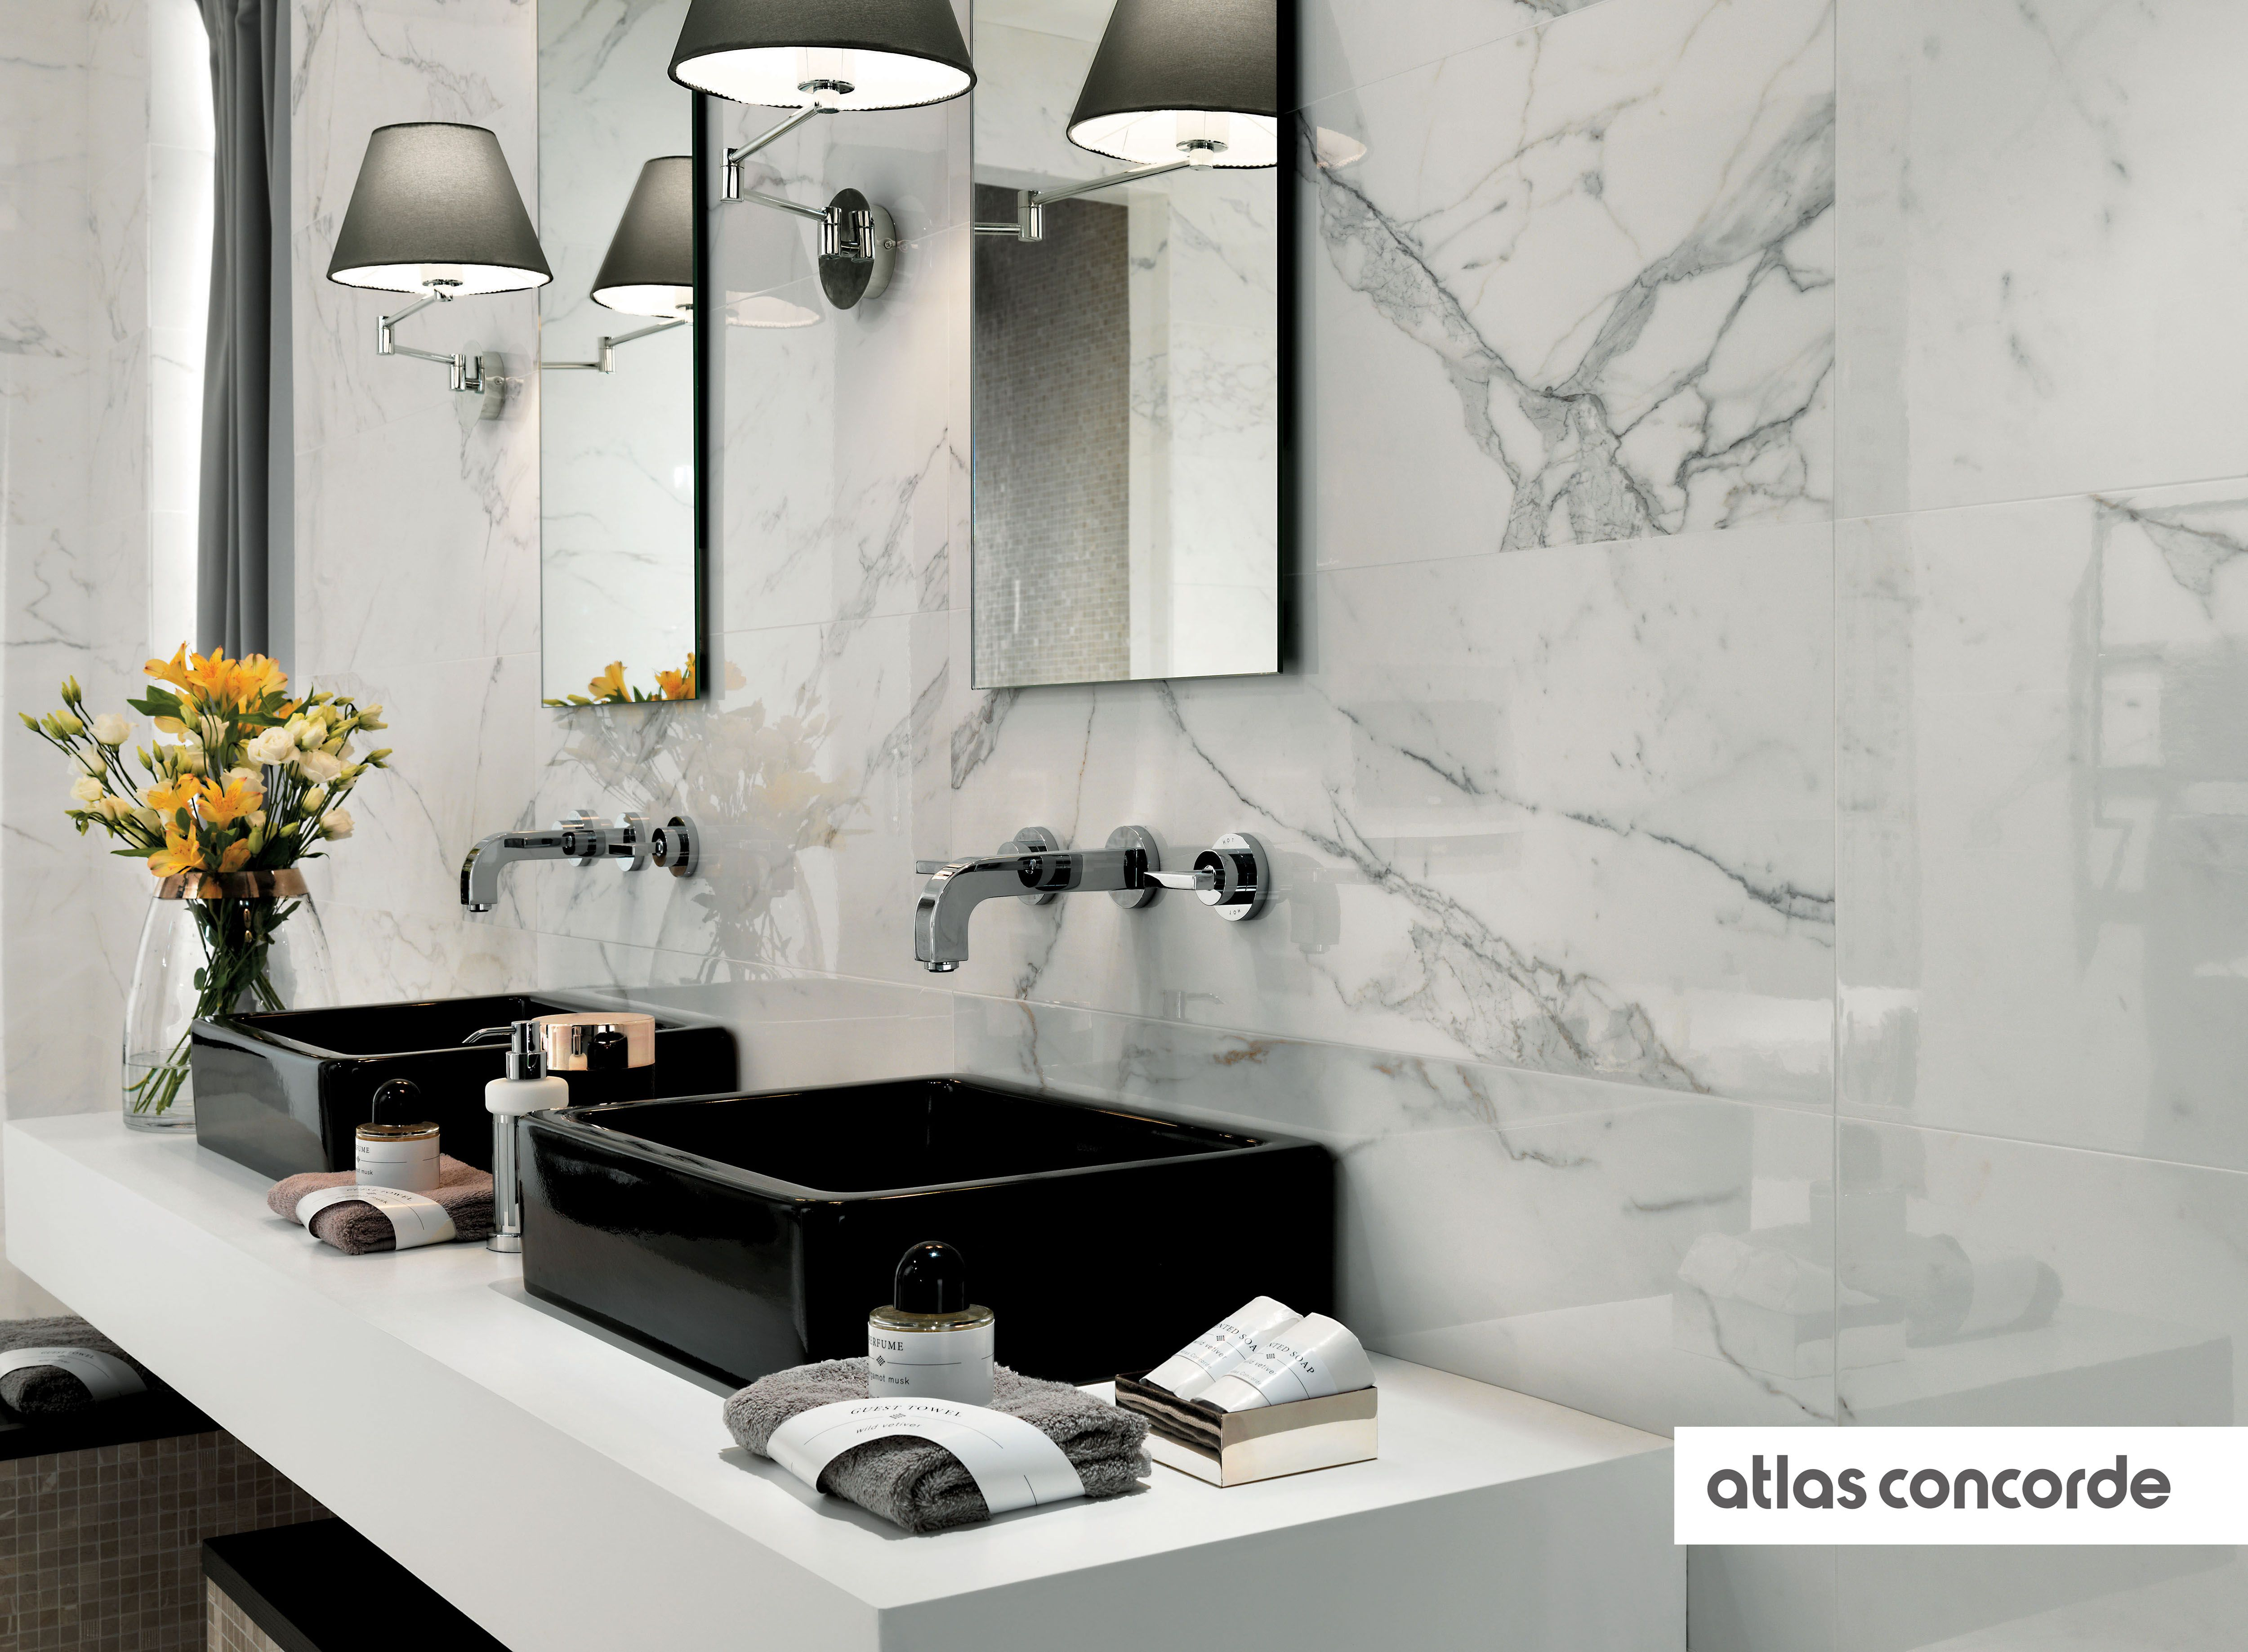 Collections | Calacatta, Concorde and Walls